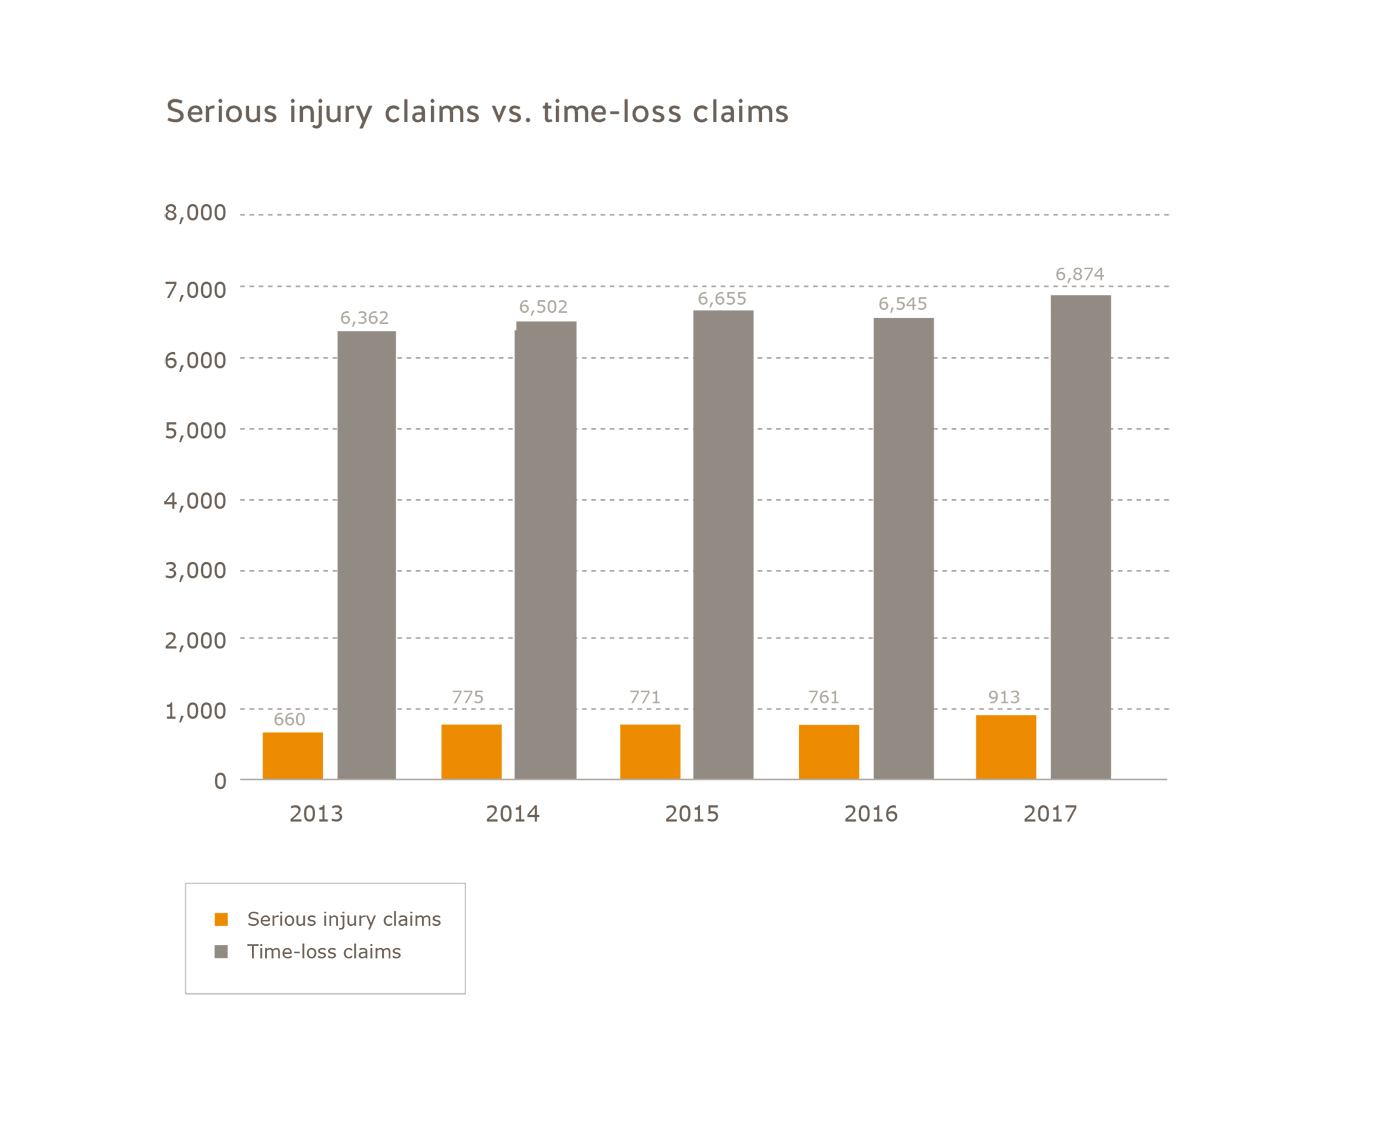 Number of serious injury claims vs. number of time-loss claims for young workers 2013 to 2017. Number of serious injury claims: 2013 = 660, 2014 = 775, 2015 = 771, 2016 = 761, 2017 = 913. Number of time-loss claims: 2013 = 6,362, 2014 = 6,502, 2015 = 6,655, 2016 = 6,545, 2017 = 6,874.